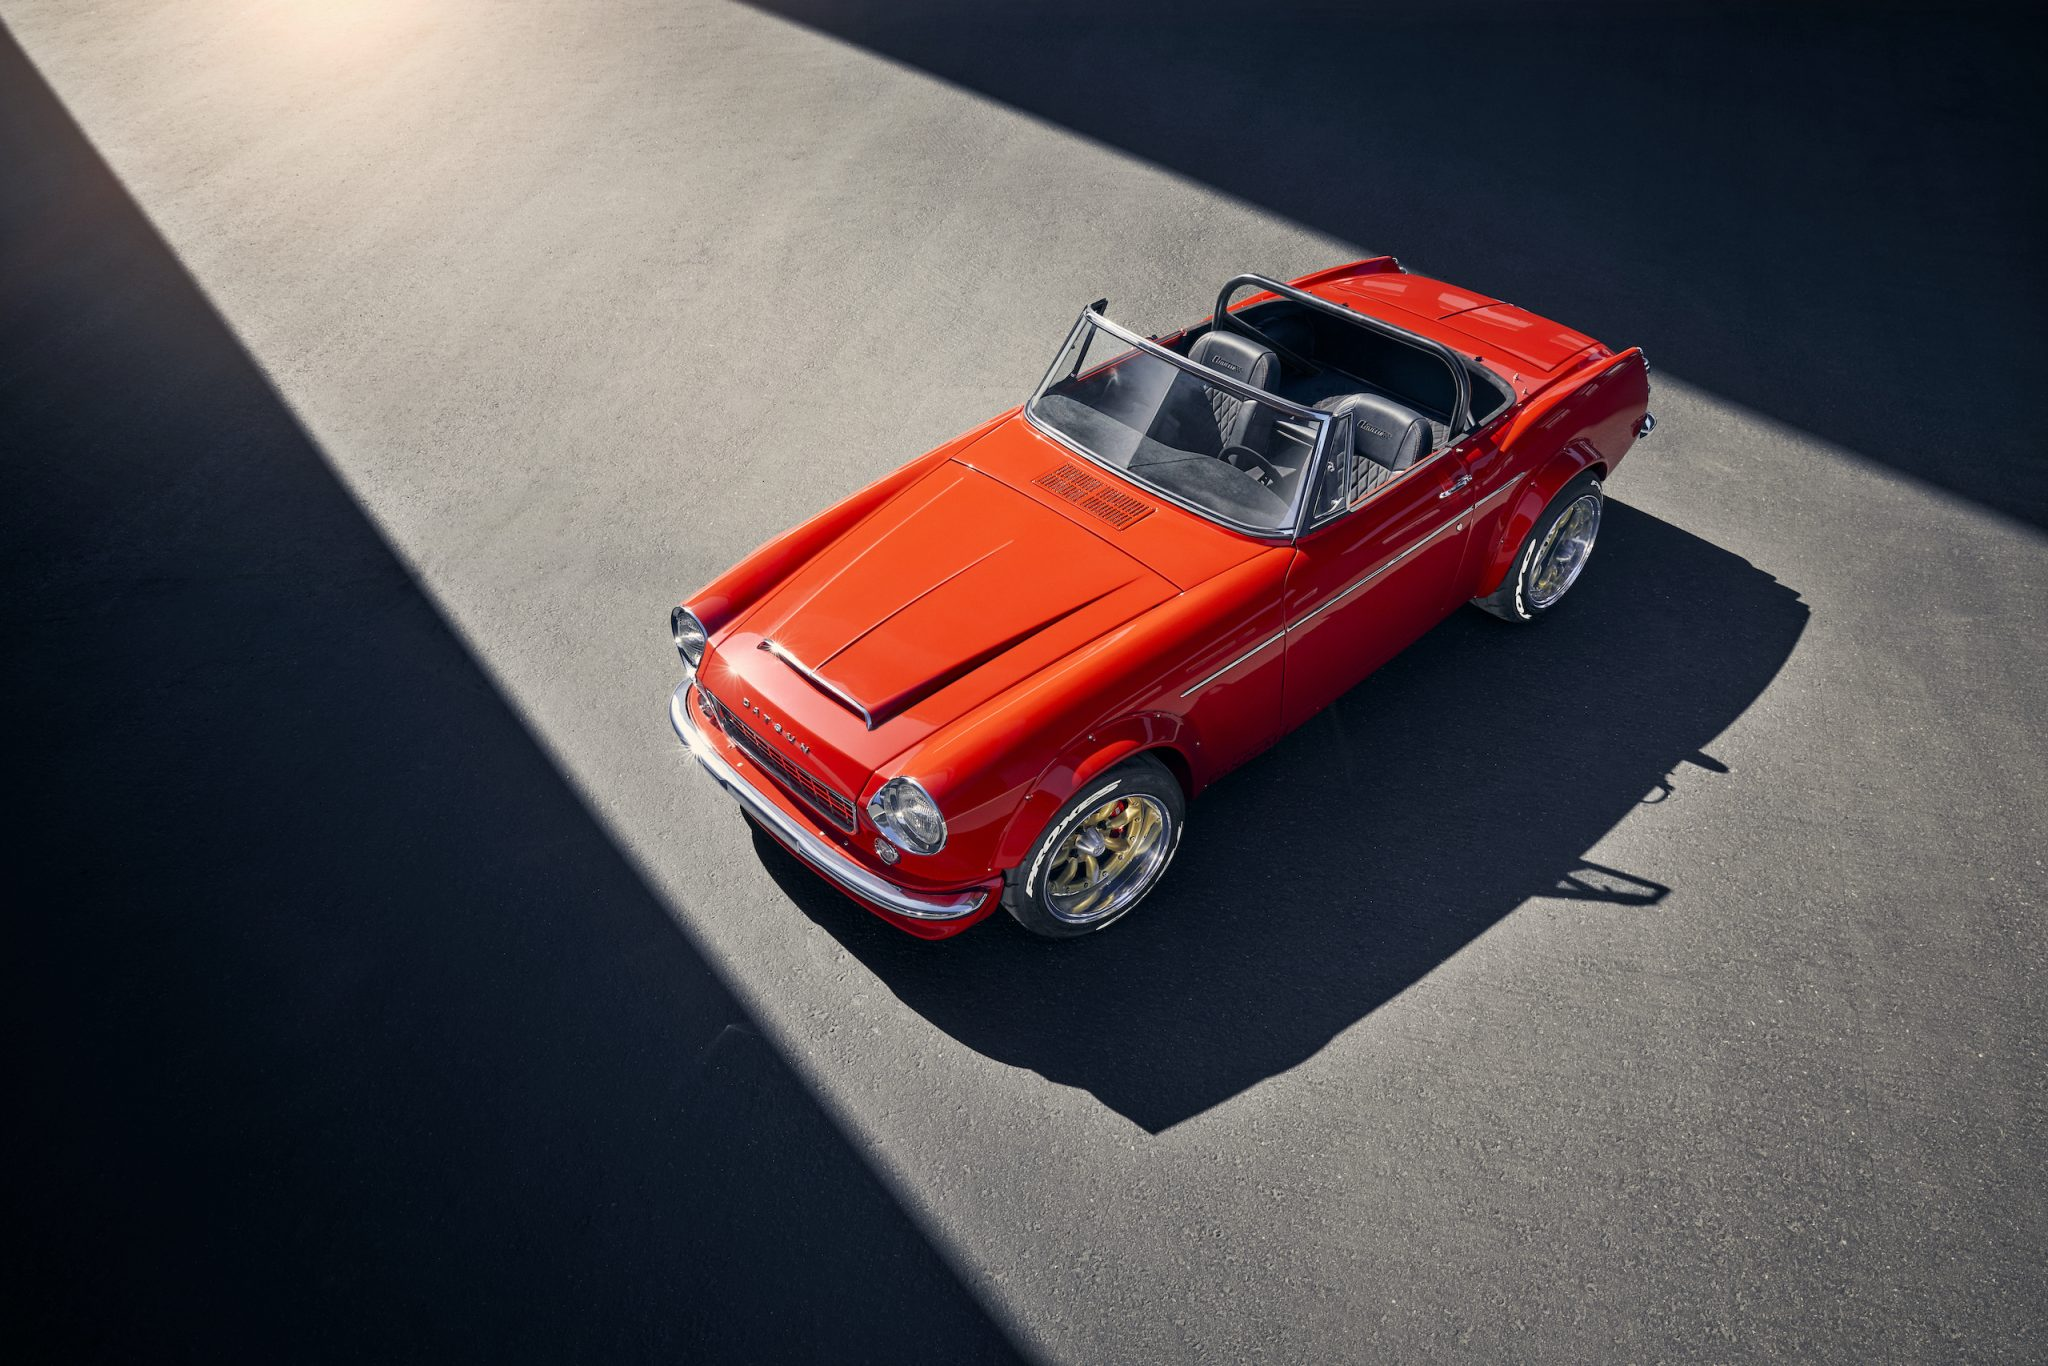 Mike Spagnola Jr. bought his Datsun roadster for $600 and spent half a year building it. Most of the work took place in the final four months, when he dedicated more than a thousand hours to its completion. Joseph Puhy